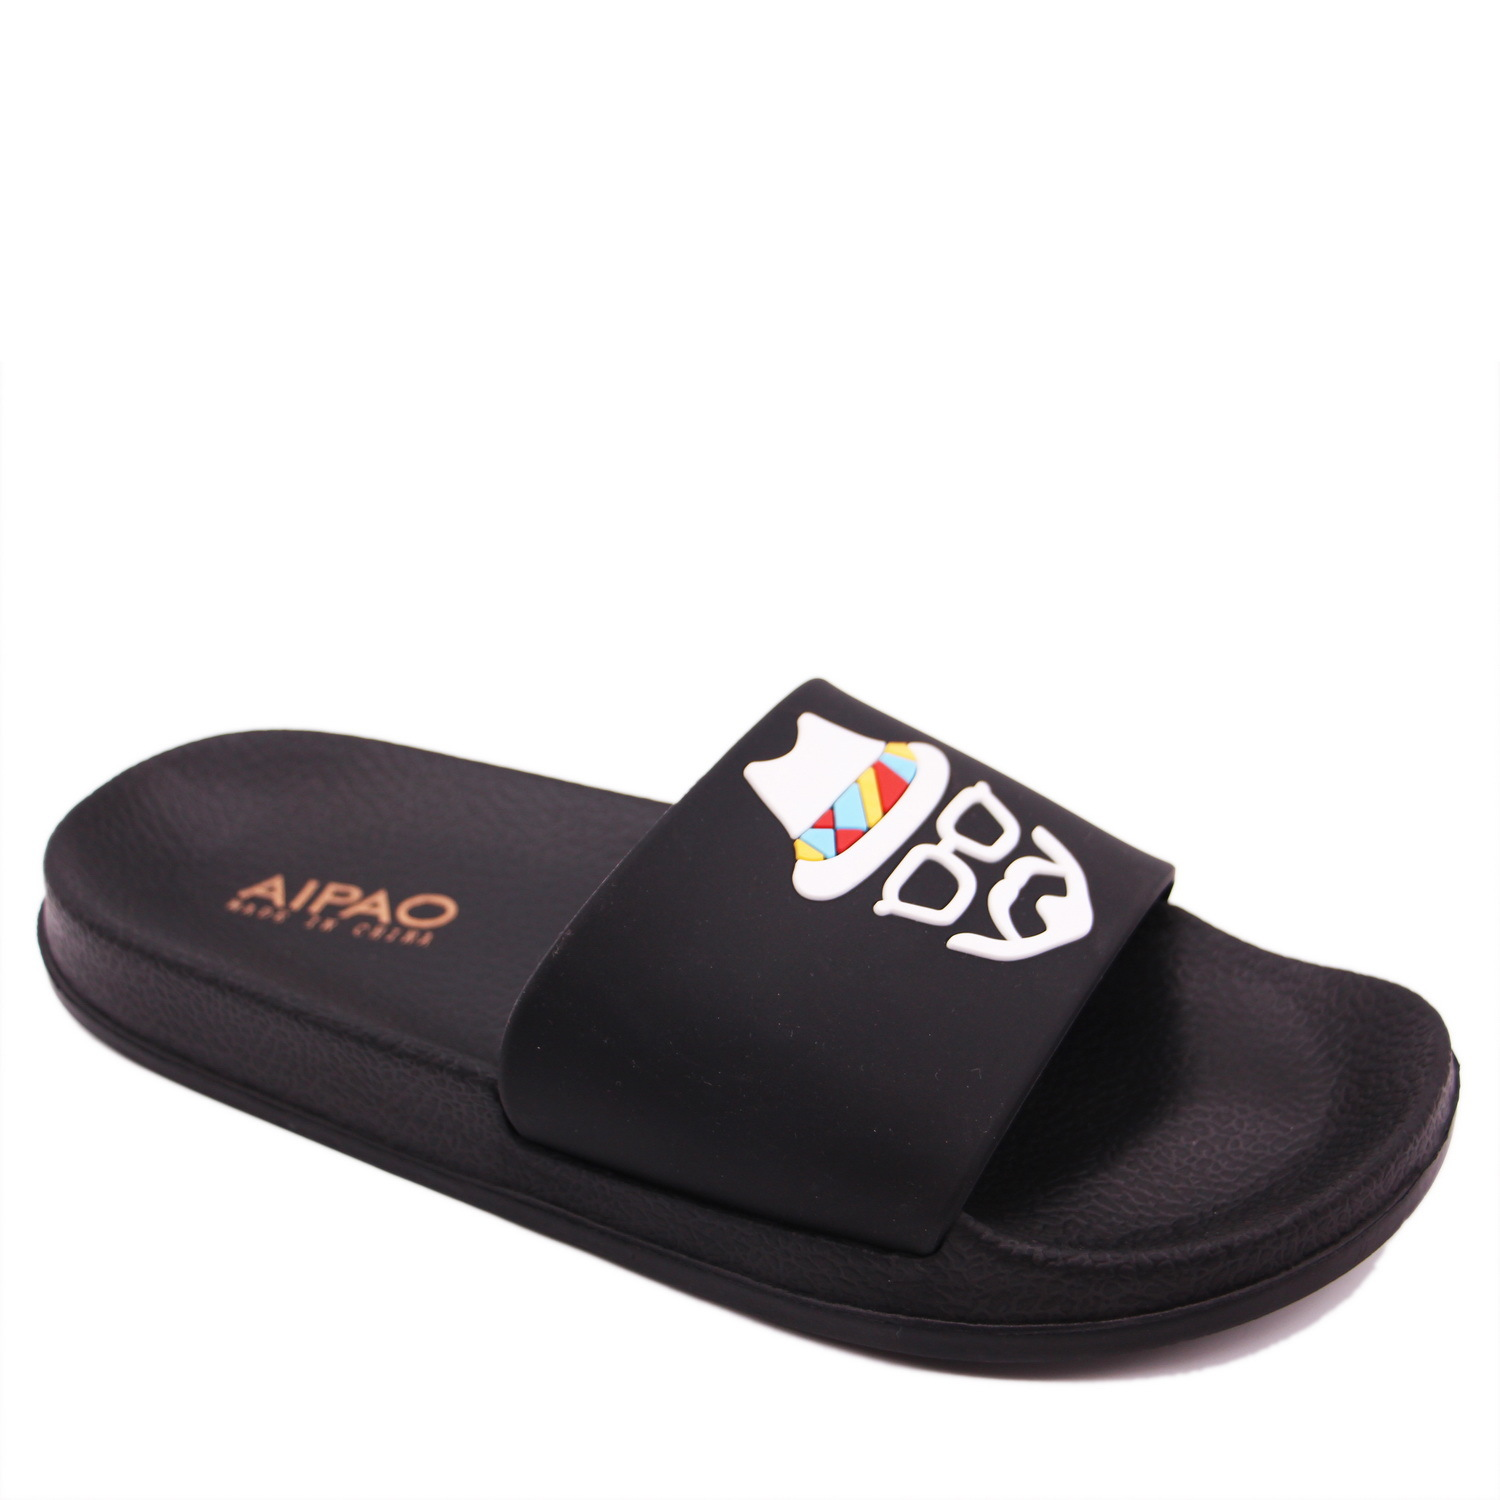 Slippers Cute Fashion Shoes for Girls